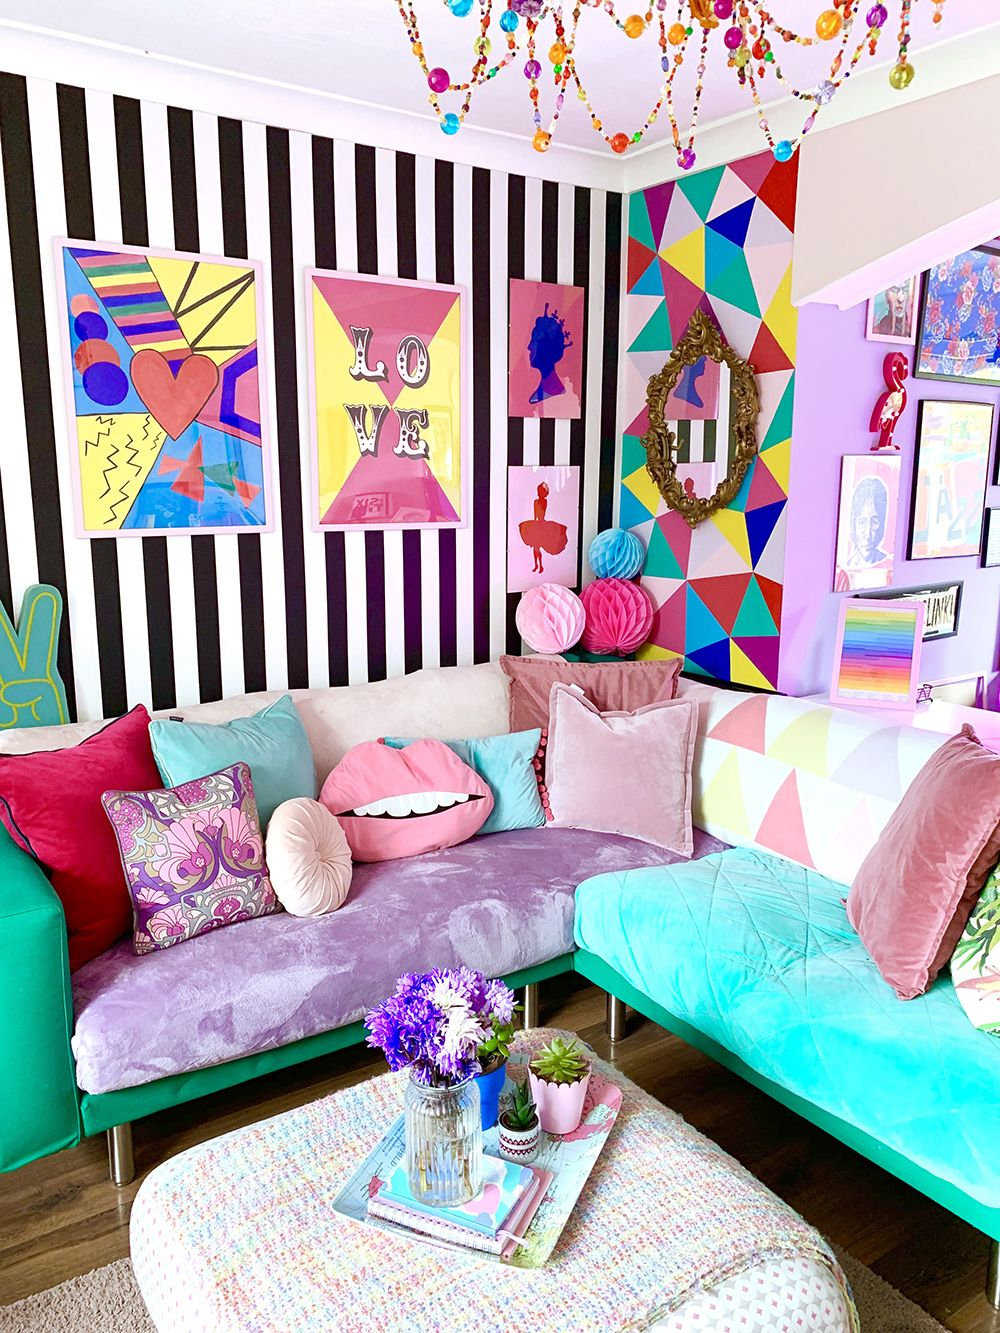 Photo of House Tour: A Crazy and Colourful Pop Art Inspired Rental in Sheffield | Audenza